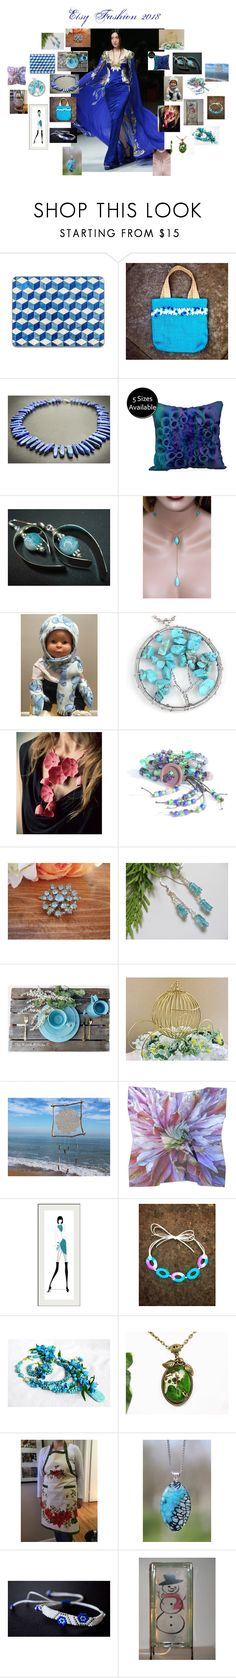 """""""Etsy Fashion 2018"""" by zebacreations ❤ liked on Polyvore featuring Lazuli, Rustico and Cadeau"""